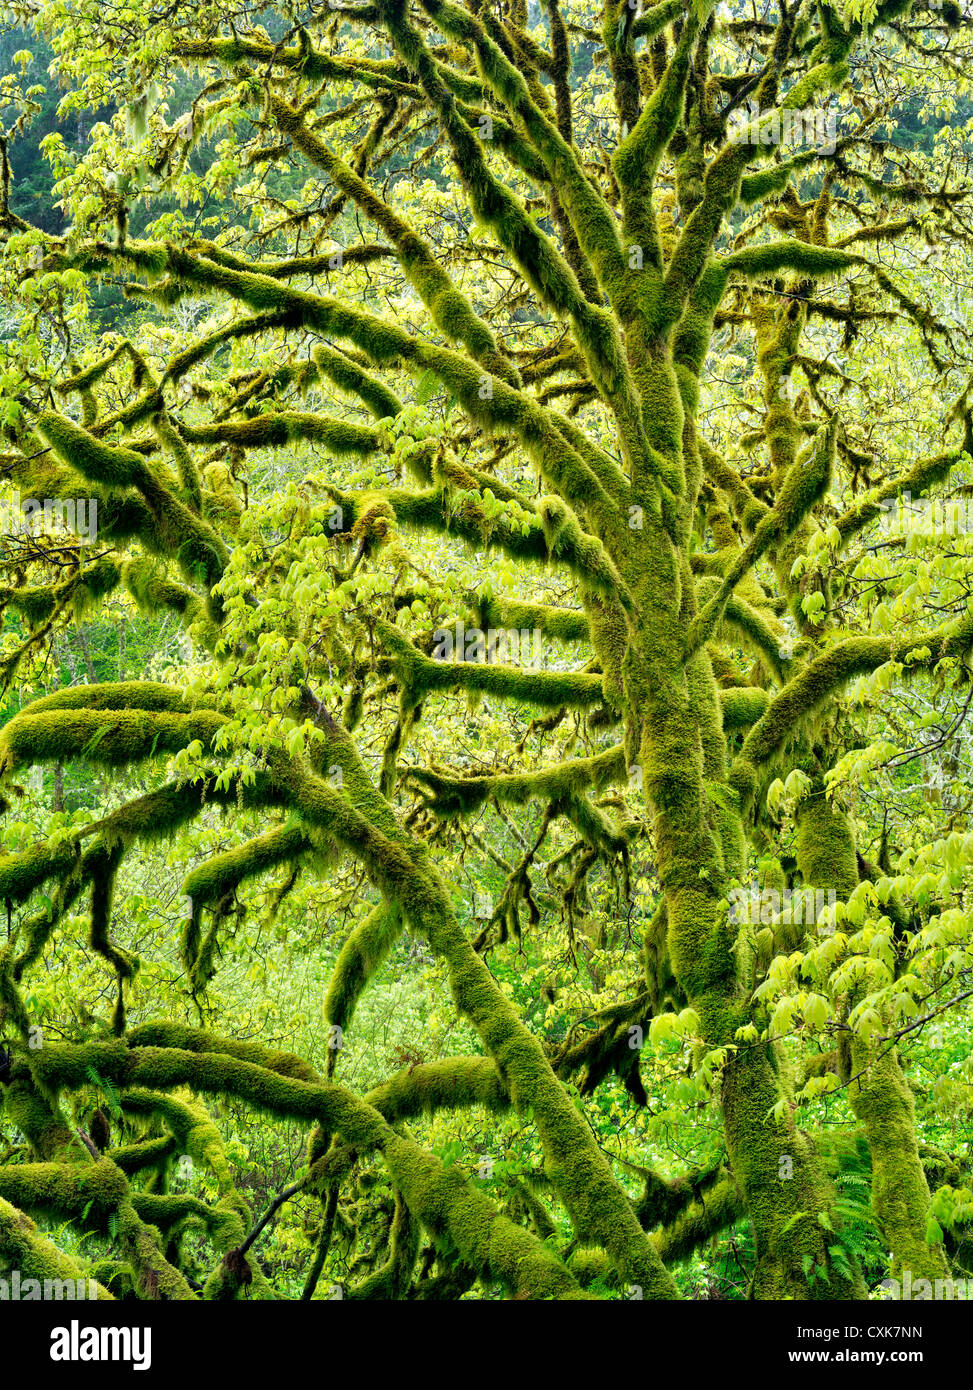 Big Leaf Maple tree with moss and new growth. Oregon coastal range. - Stock Image